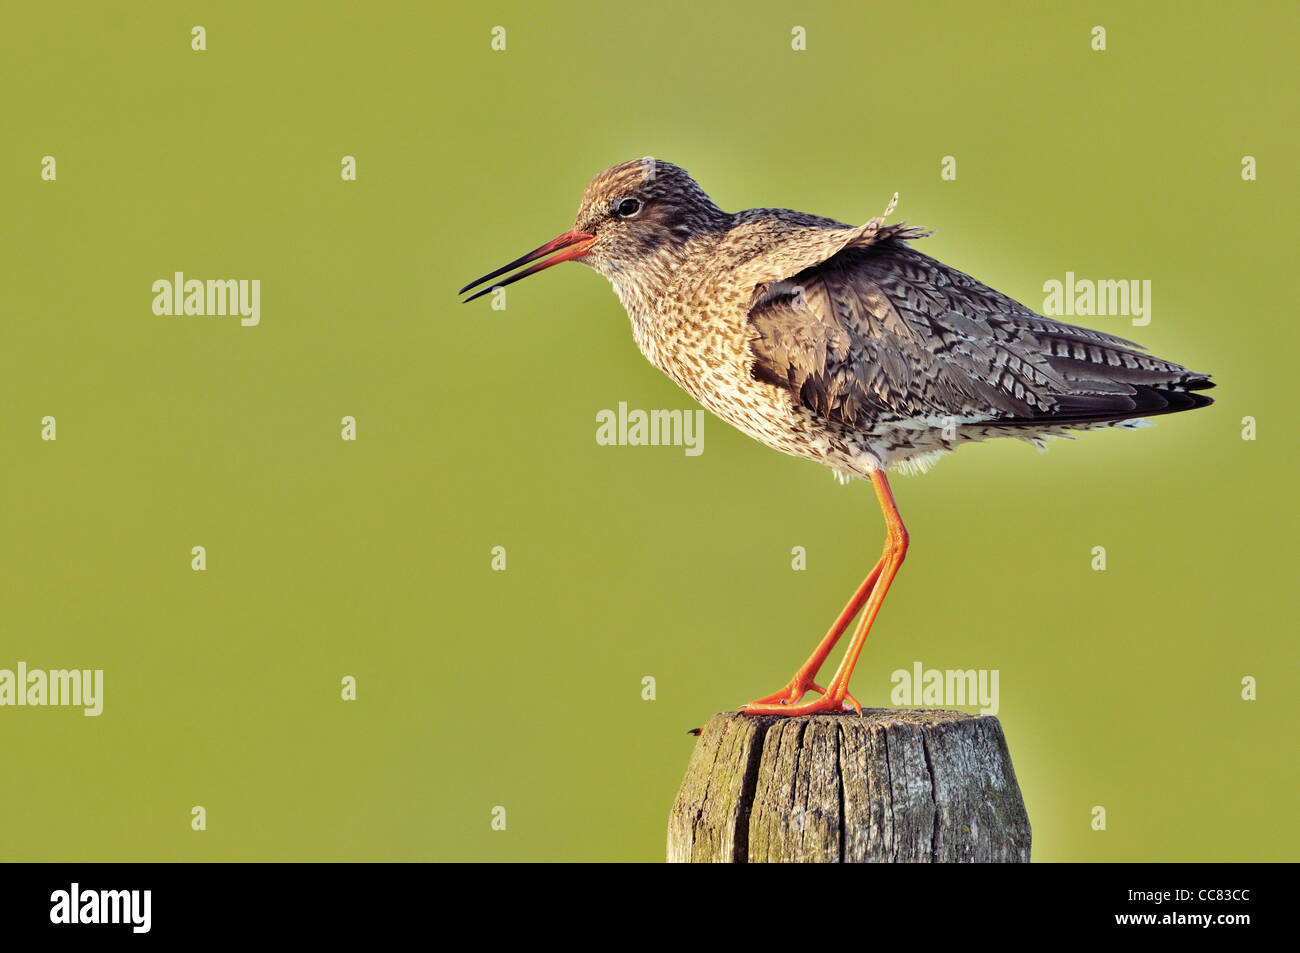 Common Redshank (Tringa totanus) perched on fence post in meadow - Stock Image